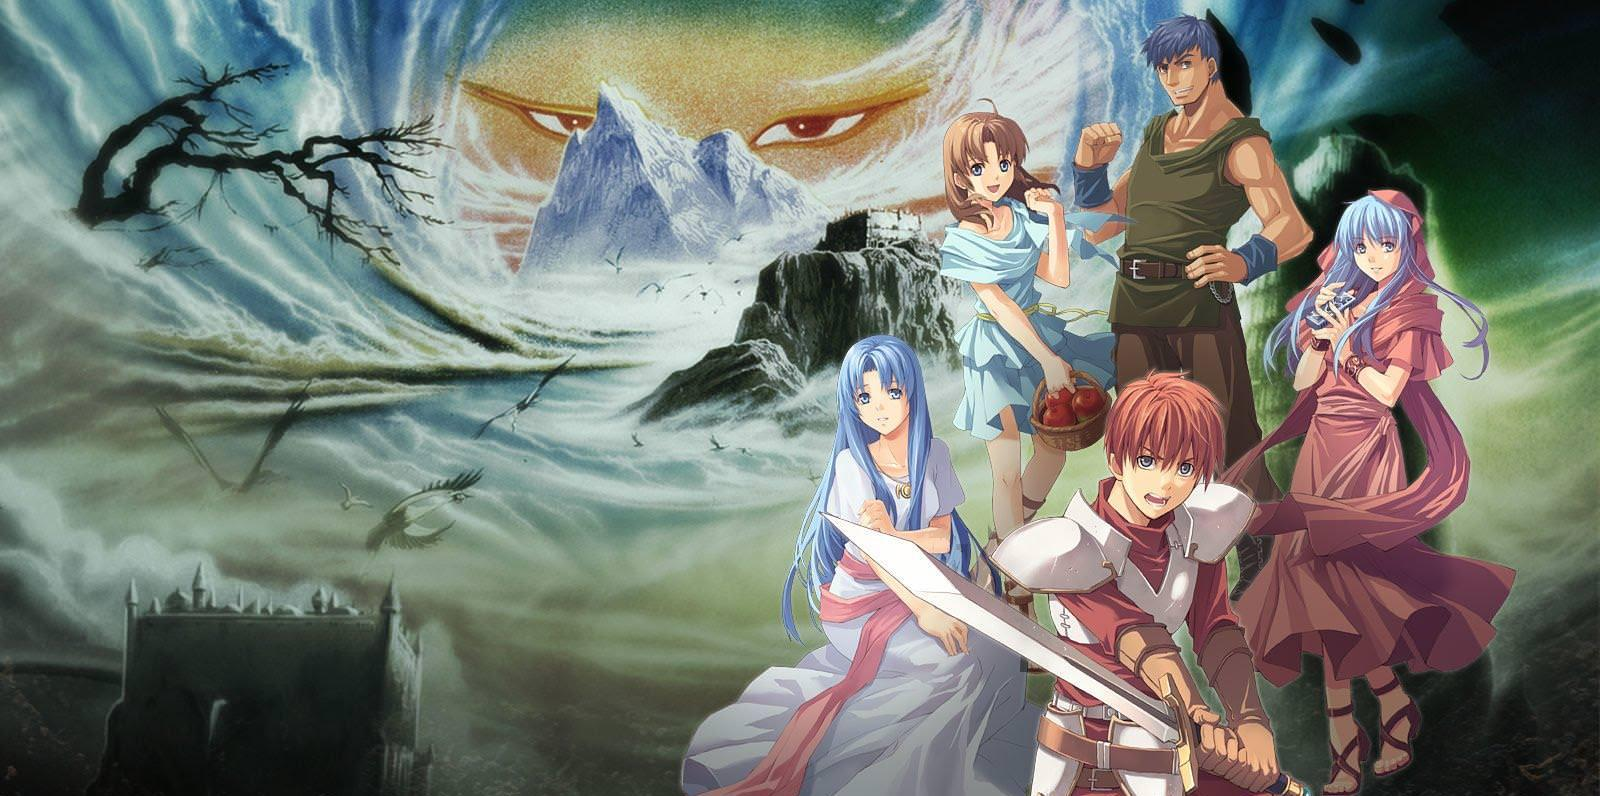 Xem phim Ancient Books of Ys II (Ss2) - Ys: Tenkuu no Shinden - Adol Christine no Bouken, Ys II: Castle in the Heavens Vietsub